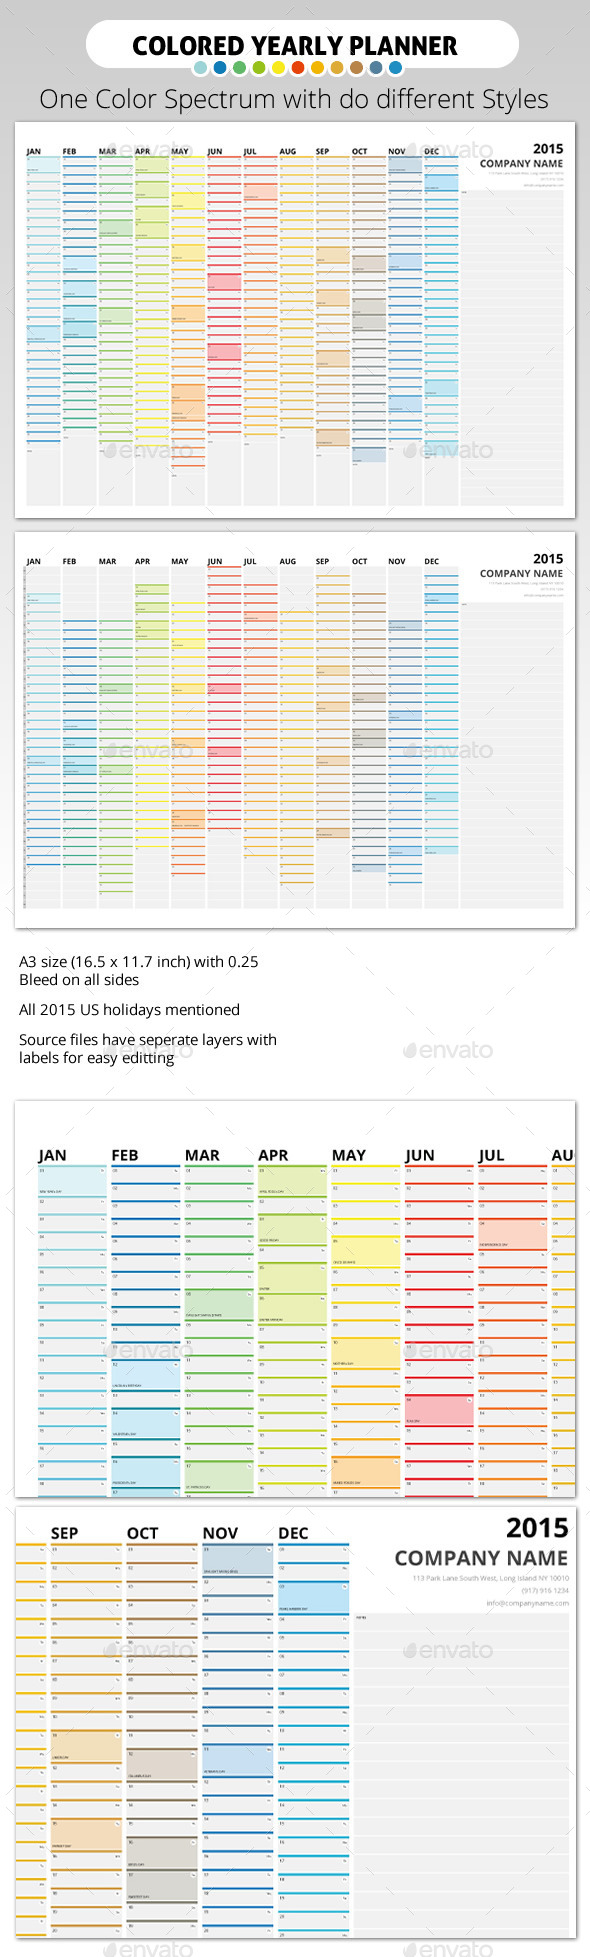 GraphicRiver 2015 Colored Wall Year Planner 9405004